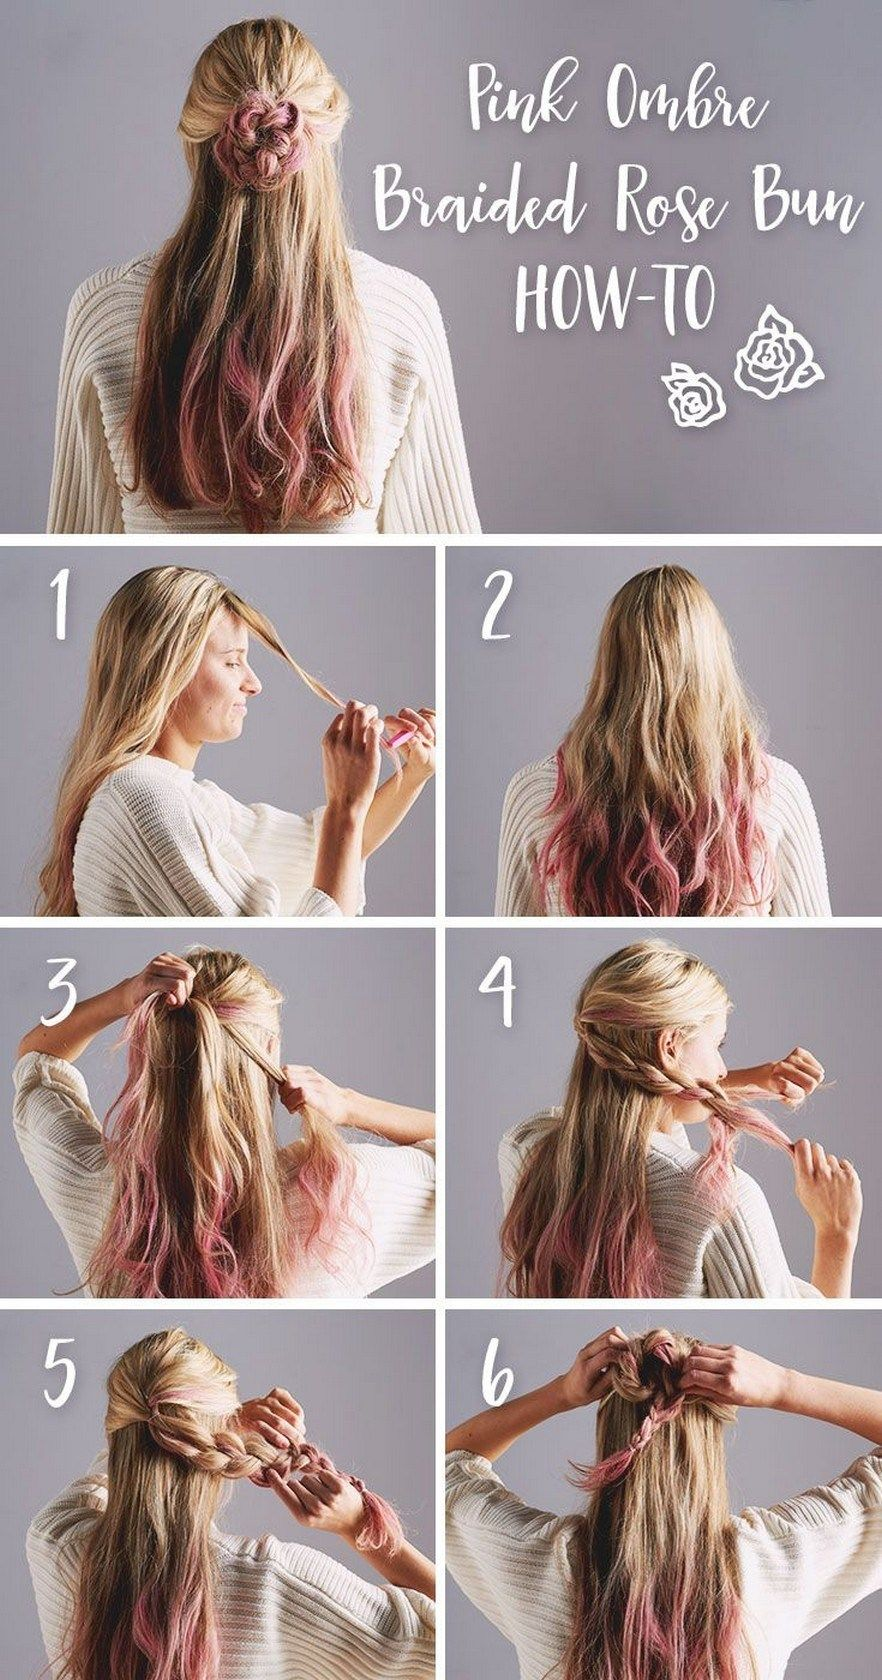 56 quick and easy hairstyles stepbystep